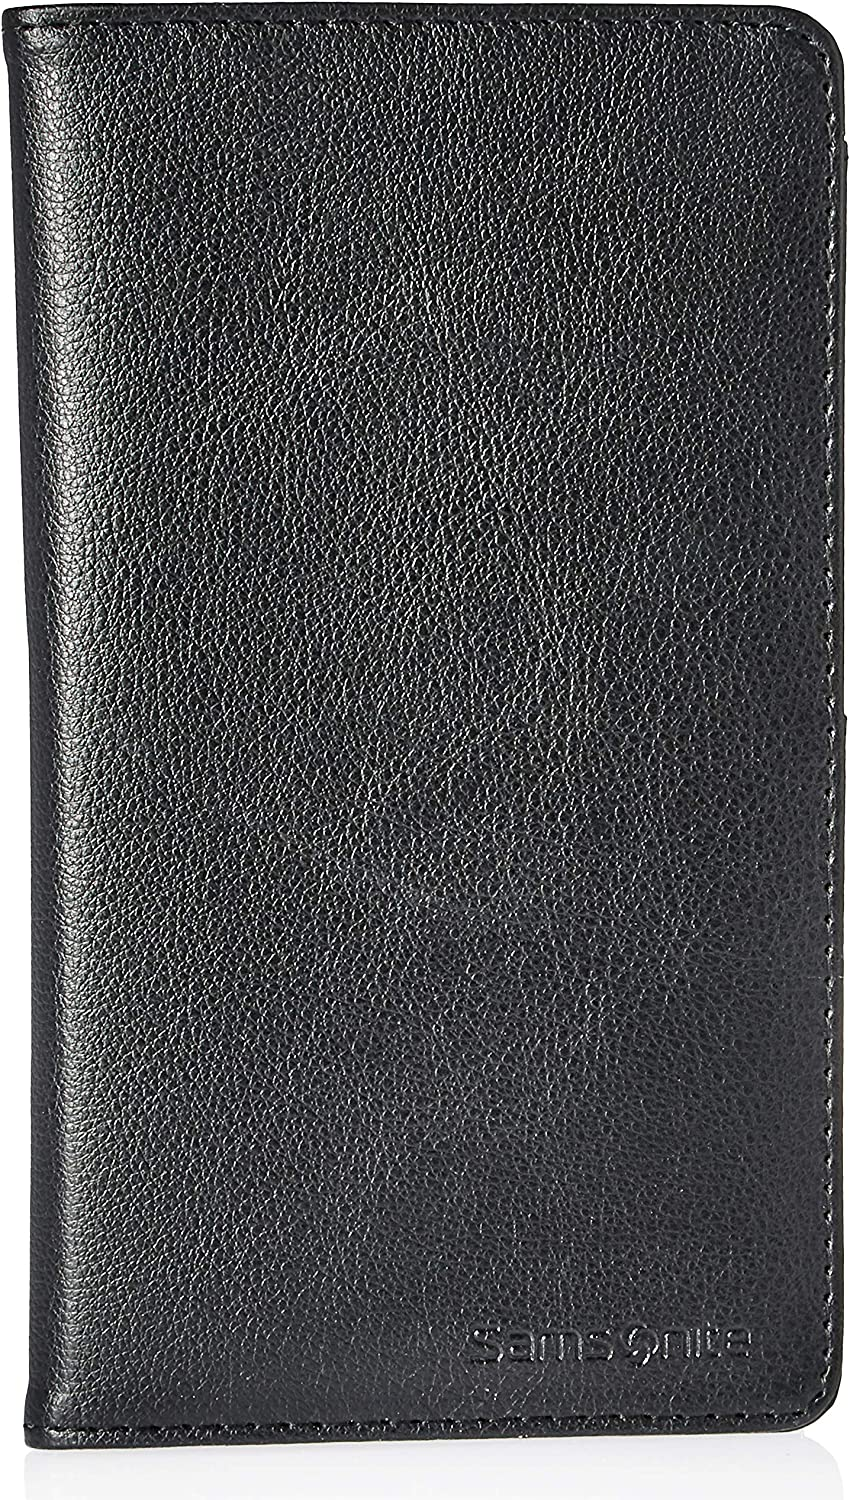 | Samsonite Travel Wallet, Black, One Size | Travel Wallets